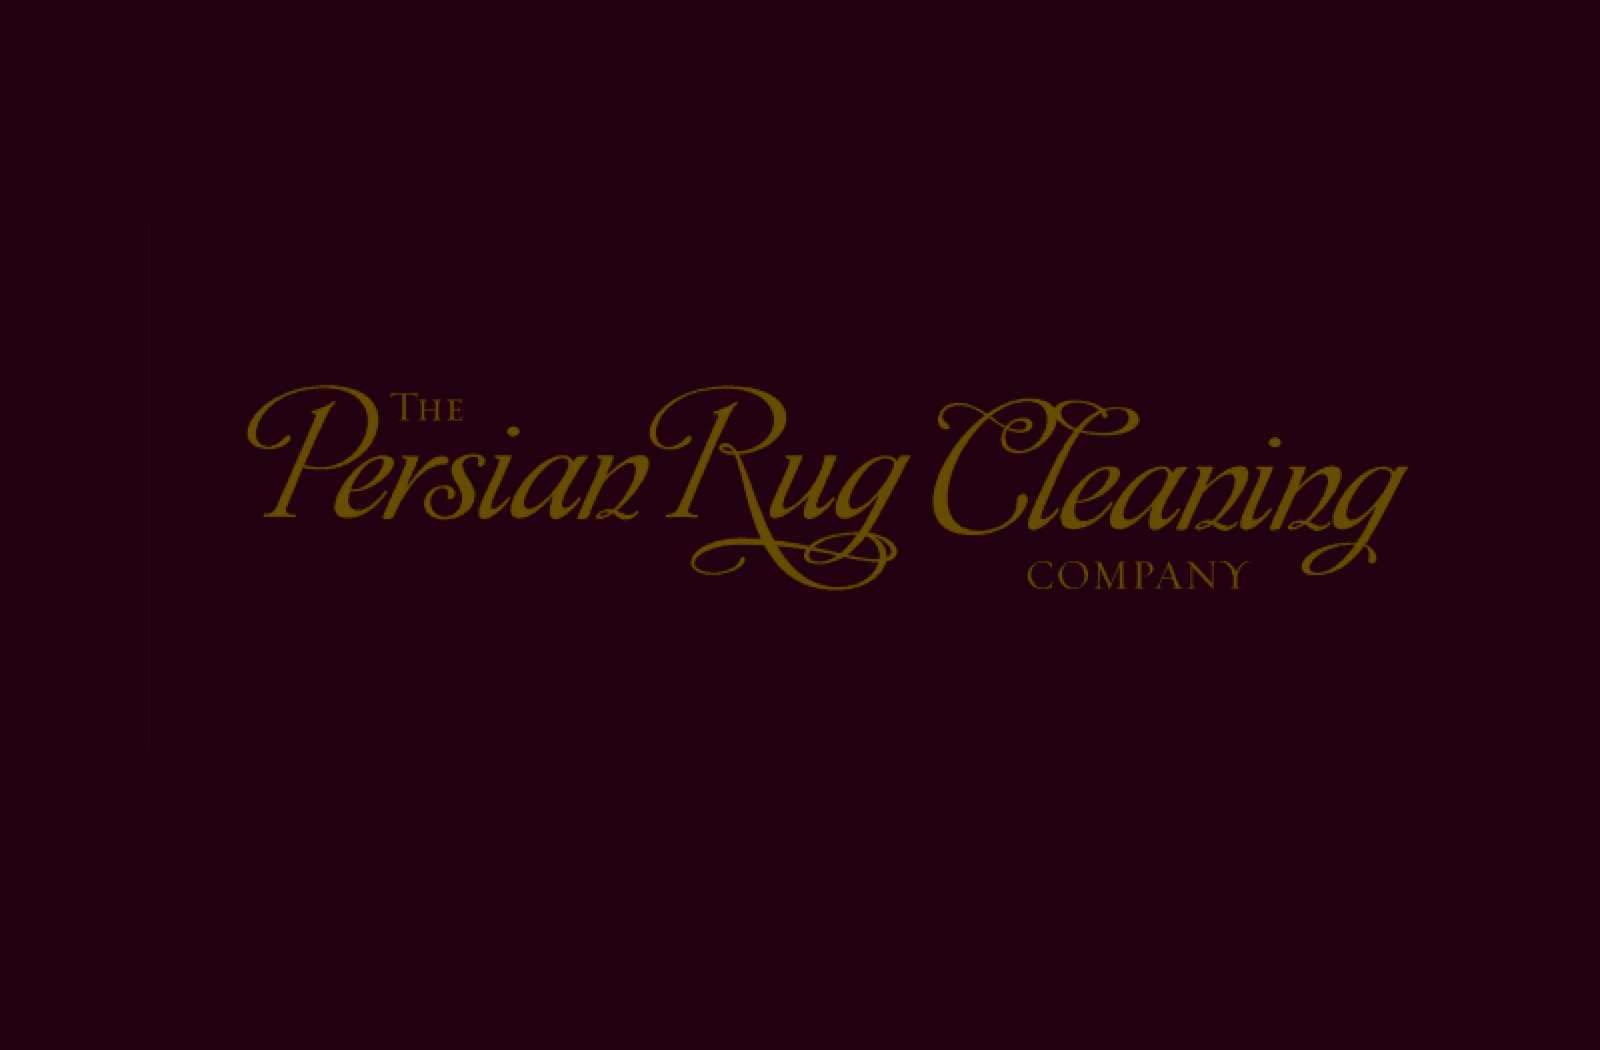 Persian Rug Cleaning Company